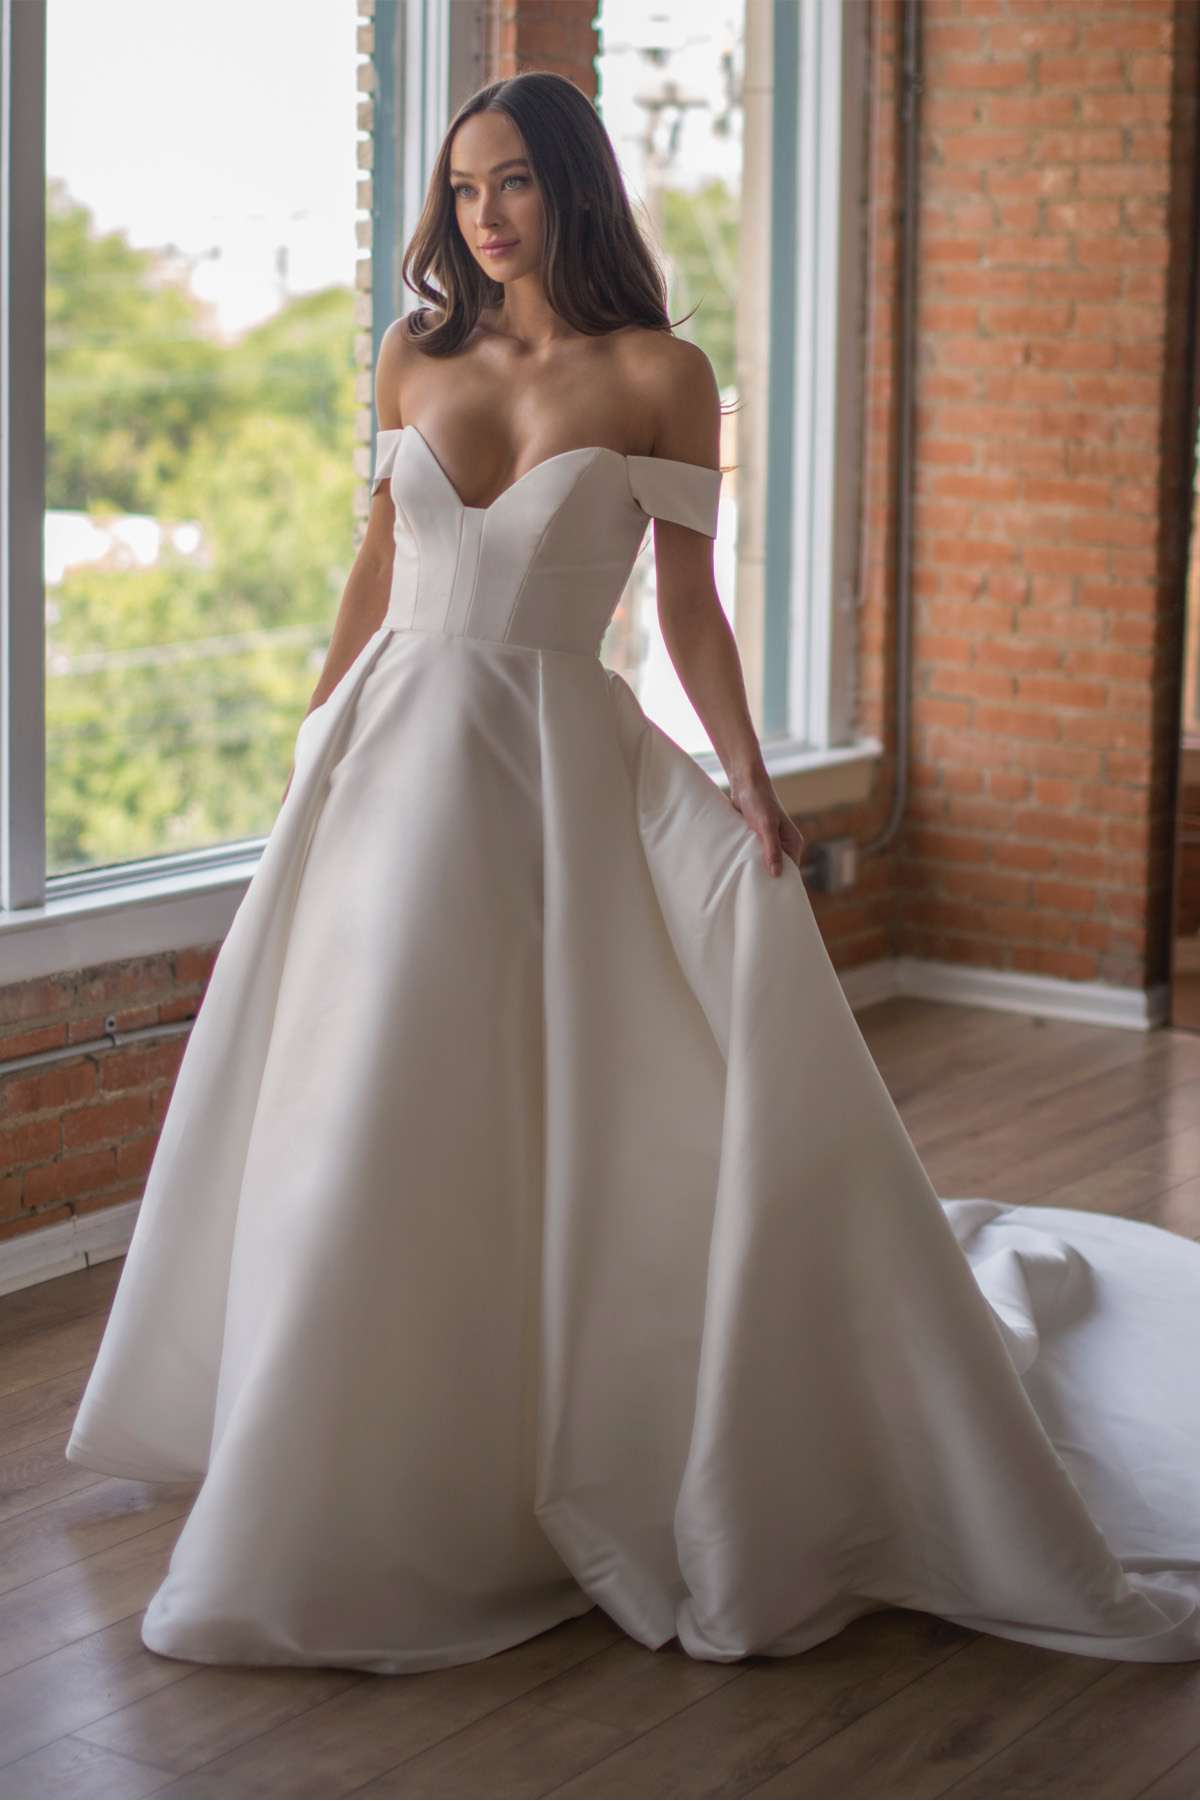 Model in a mikado ballgown with a deep sweetheart neckline and off-the-shoulder sleeves